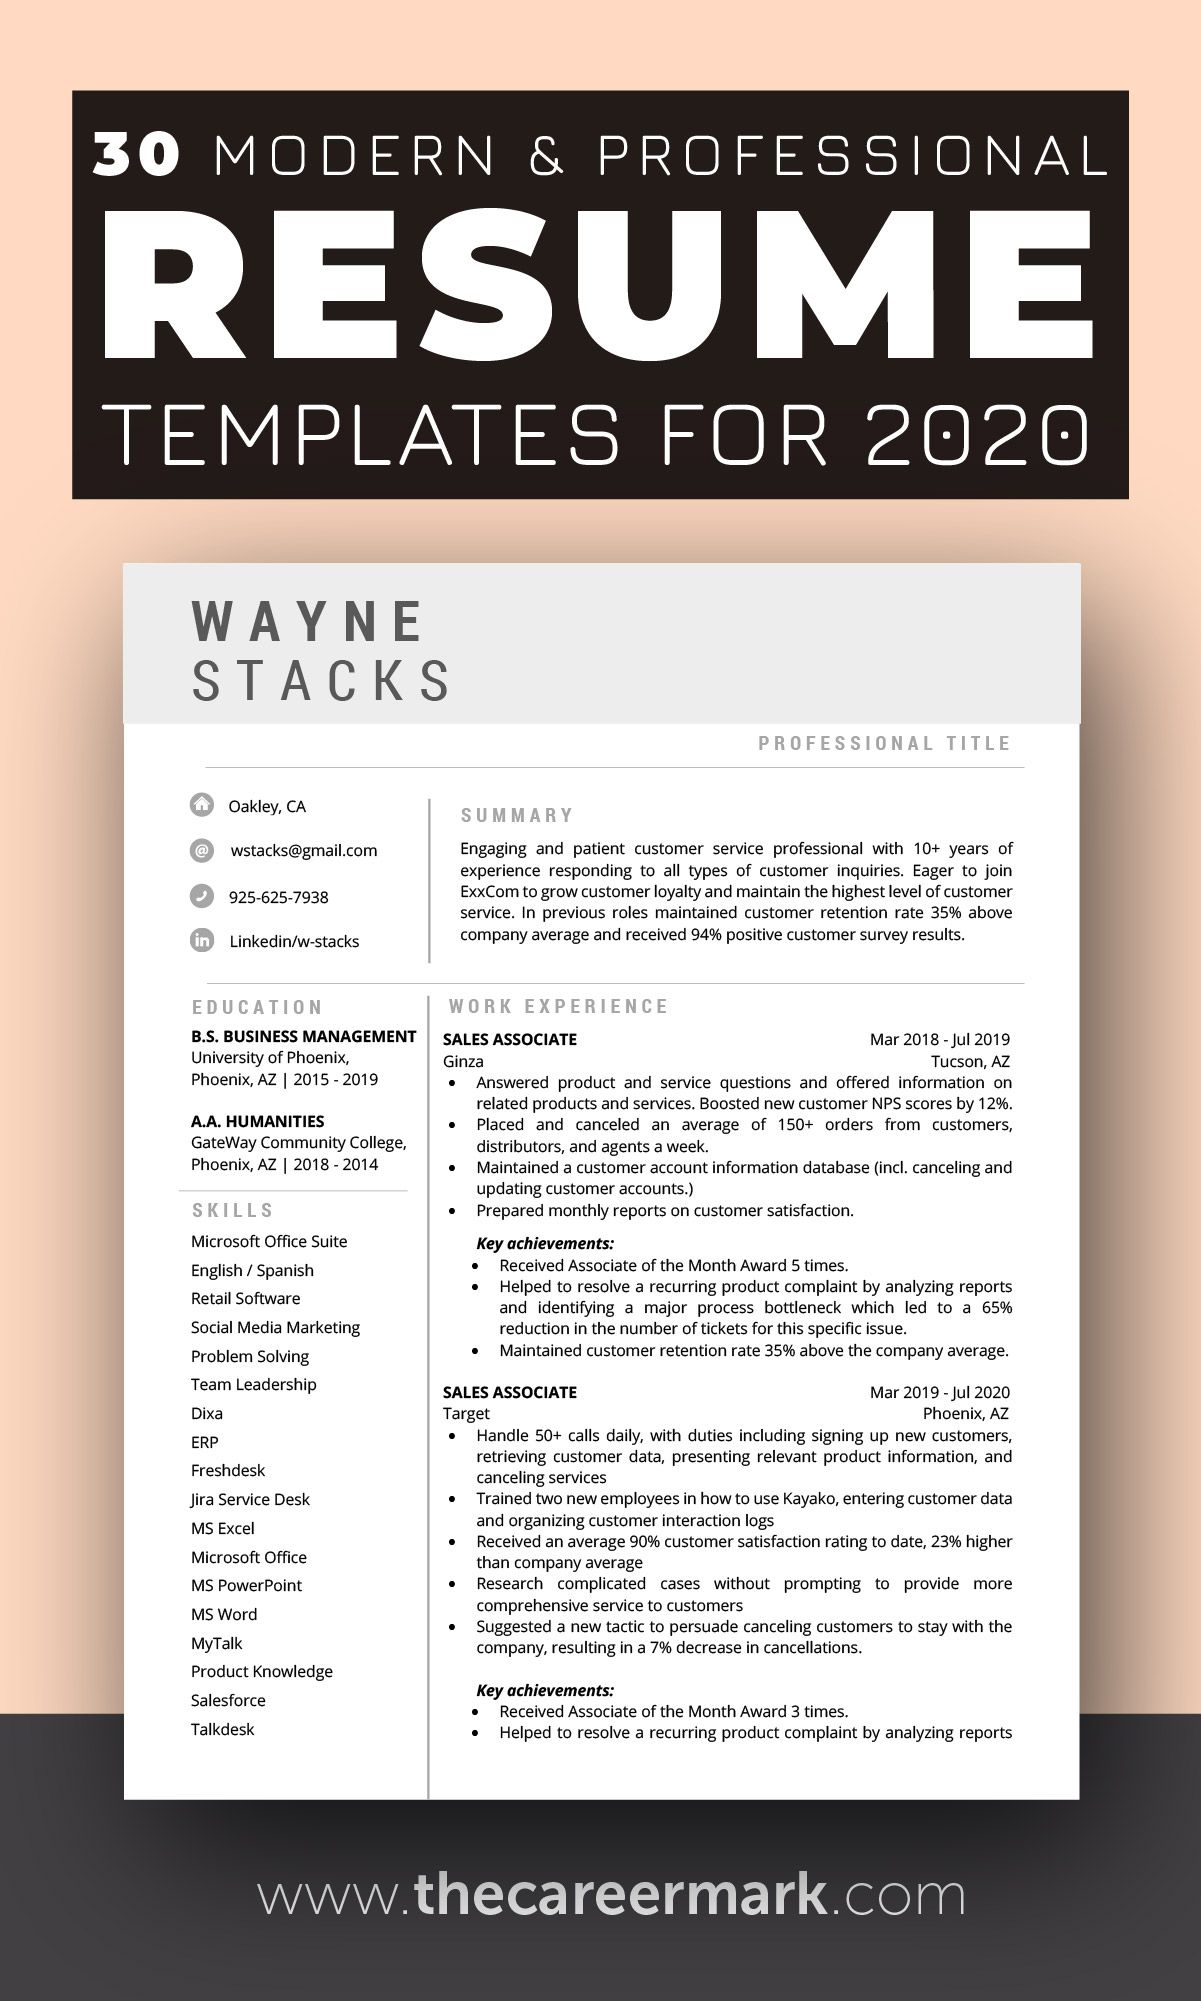 30 modern and professional resume template for 2020 in